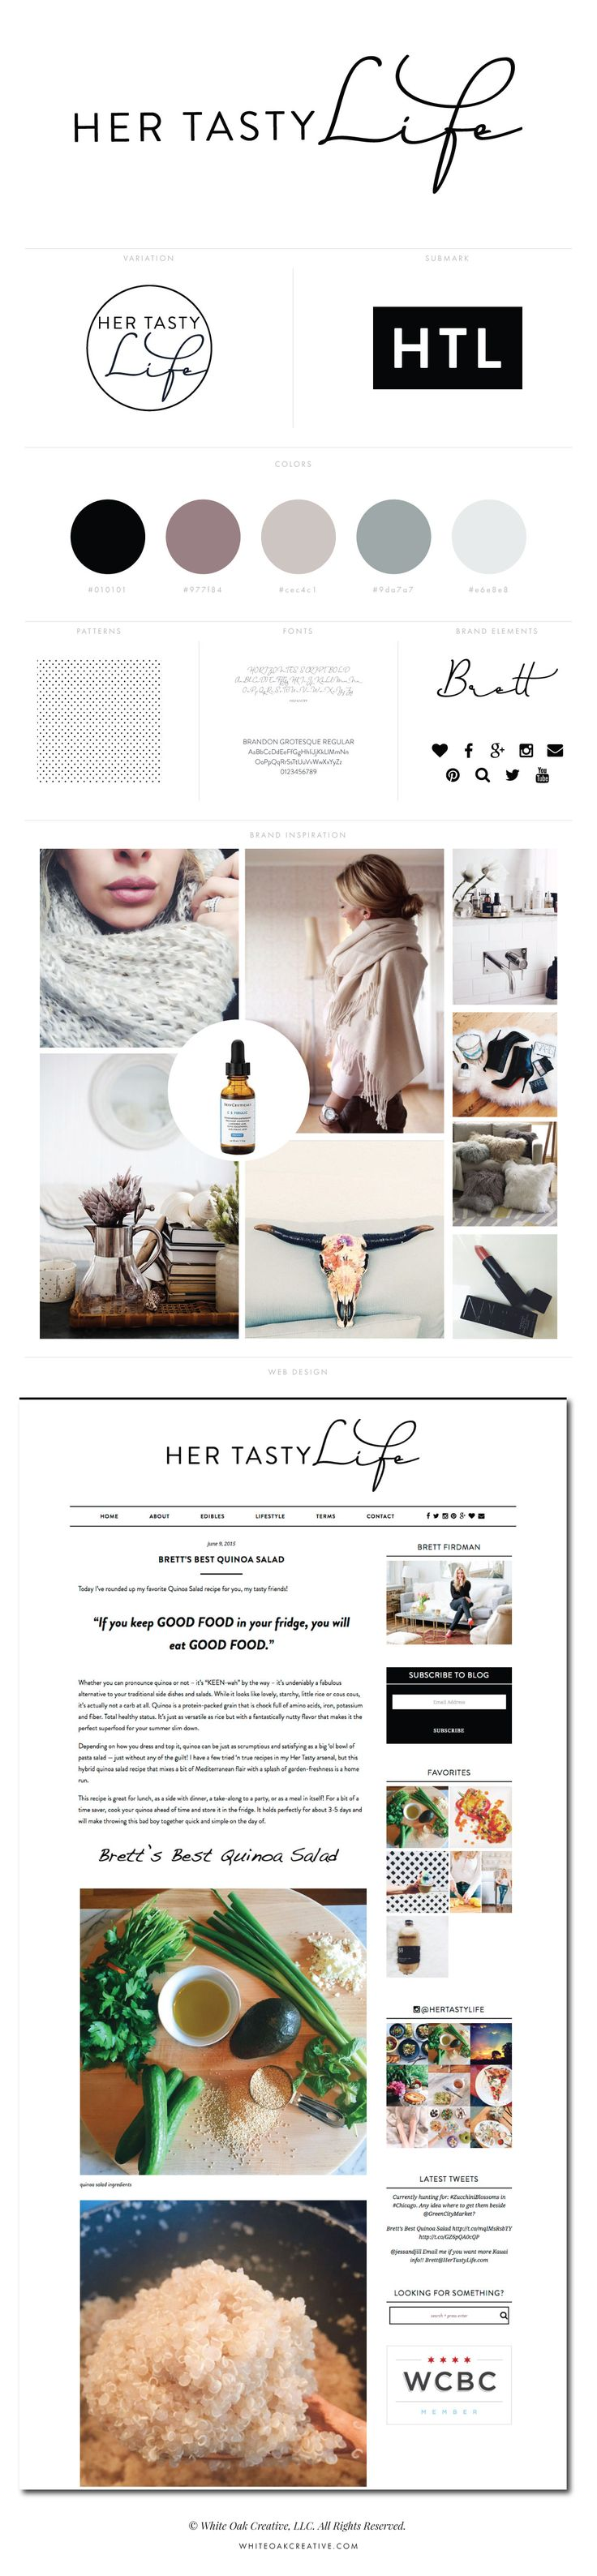 branding and blog design for lifestyle and food blog - logo design, wordpress theme, mood board inspiration, blog design idea, graphic design, branding